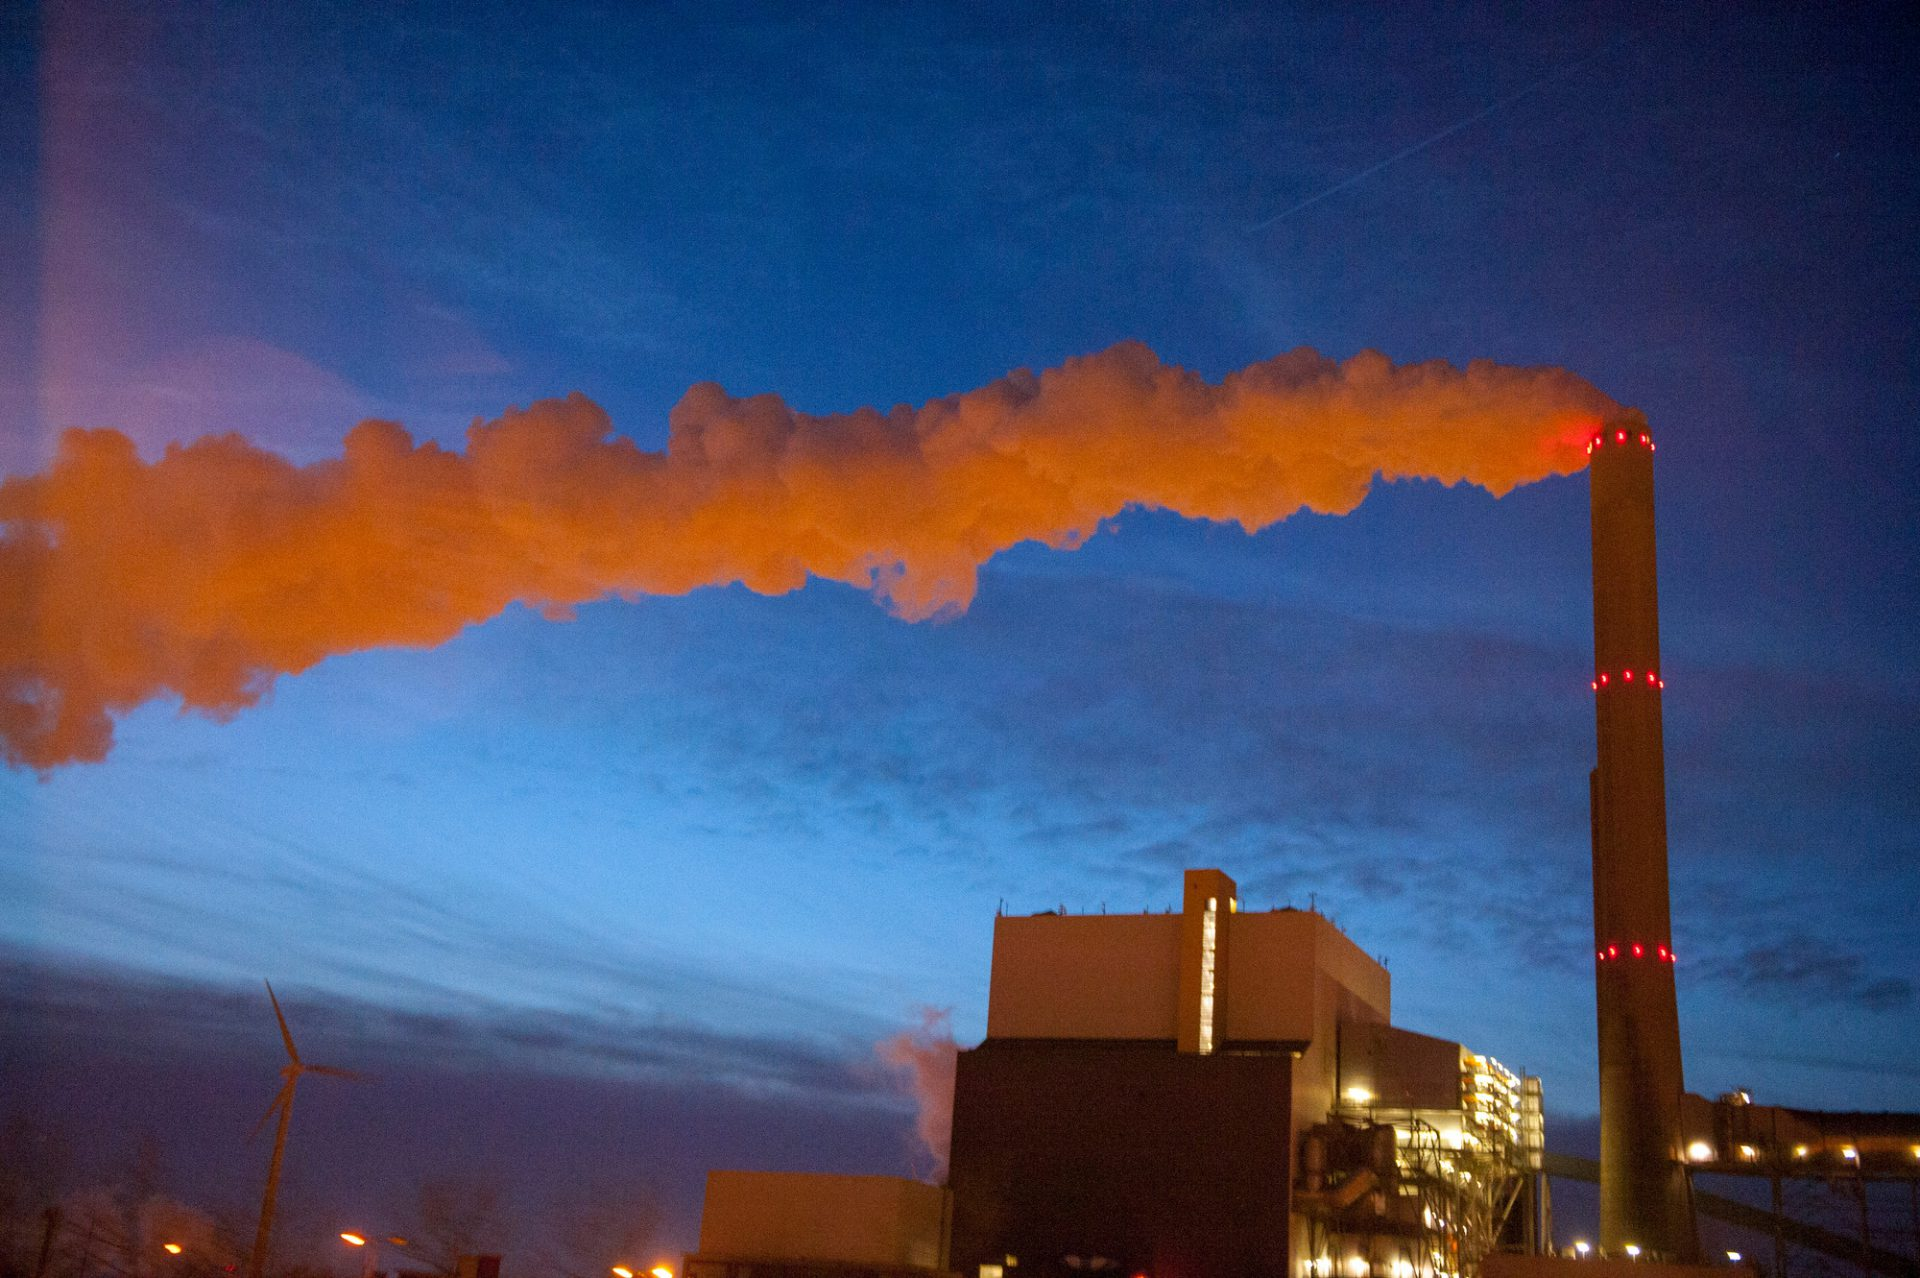 Photo: Steam from an industrial plant glows at night.